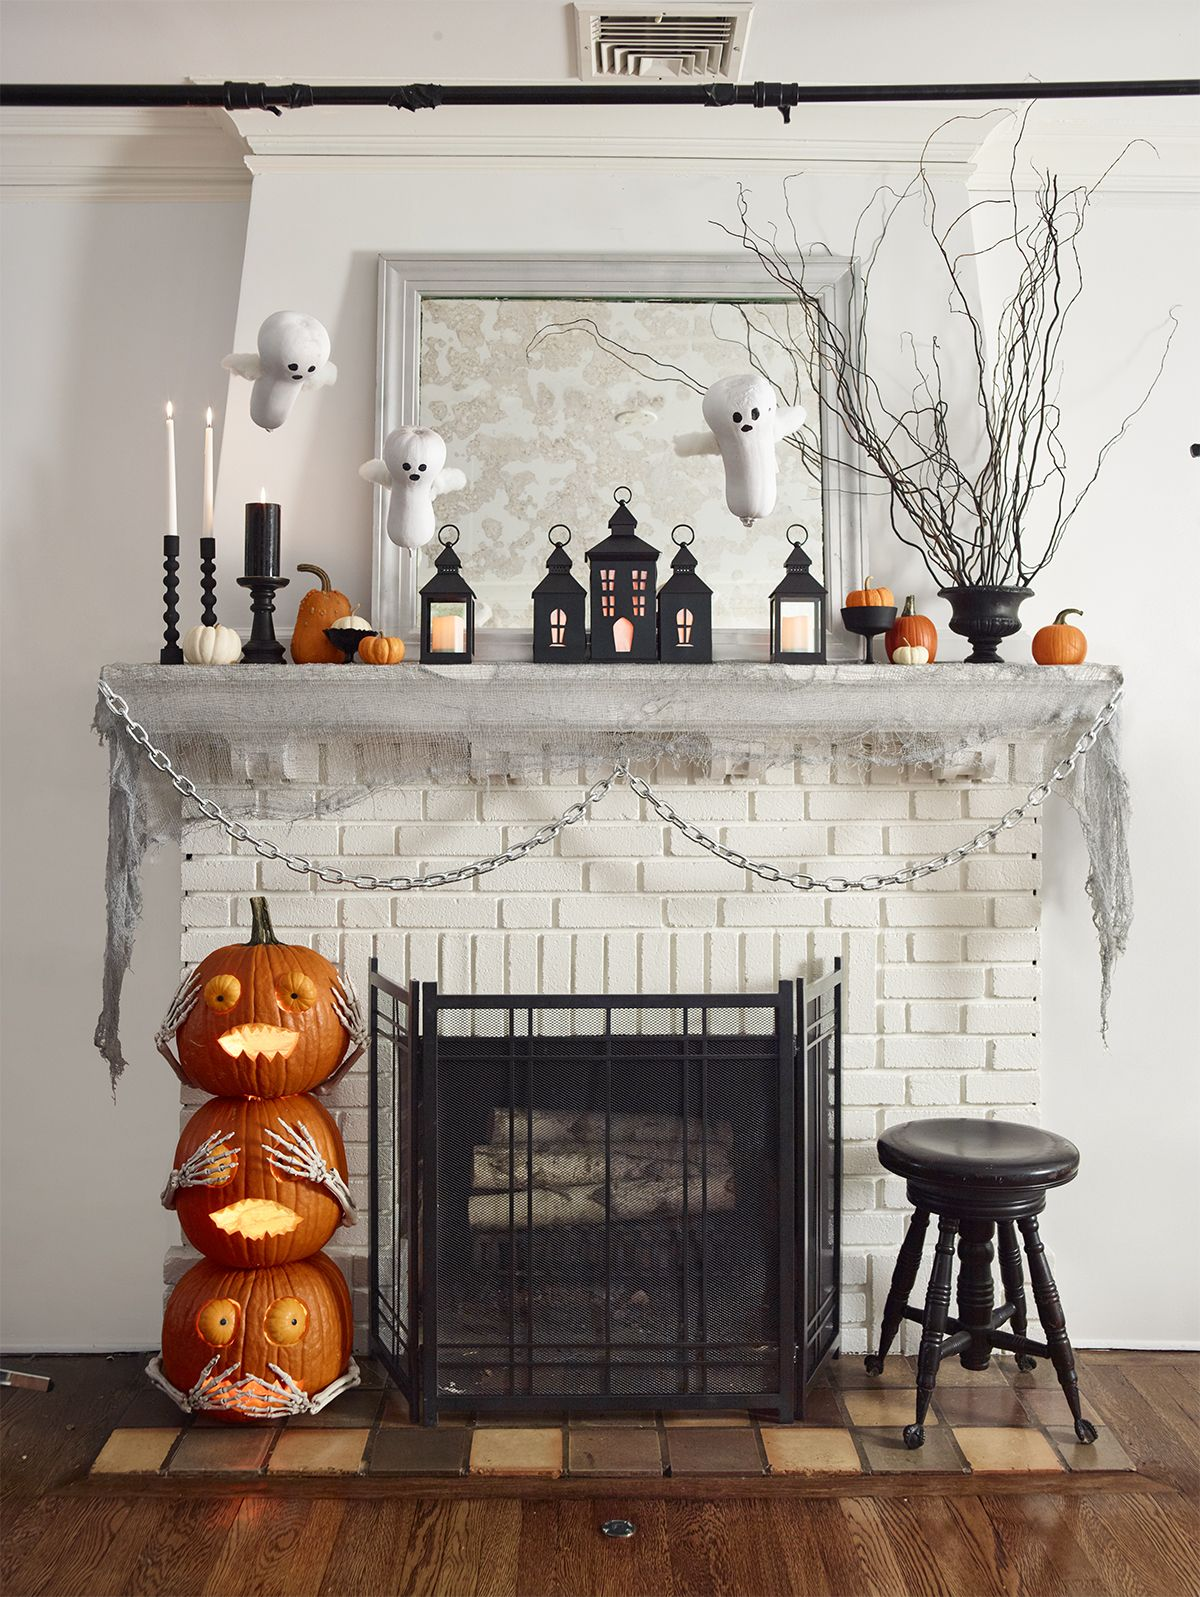 63 Diy Halloween Decorations How To Make Halloween Decorations